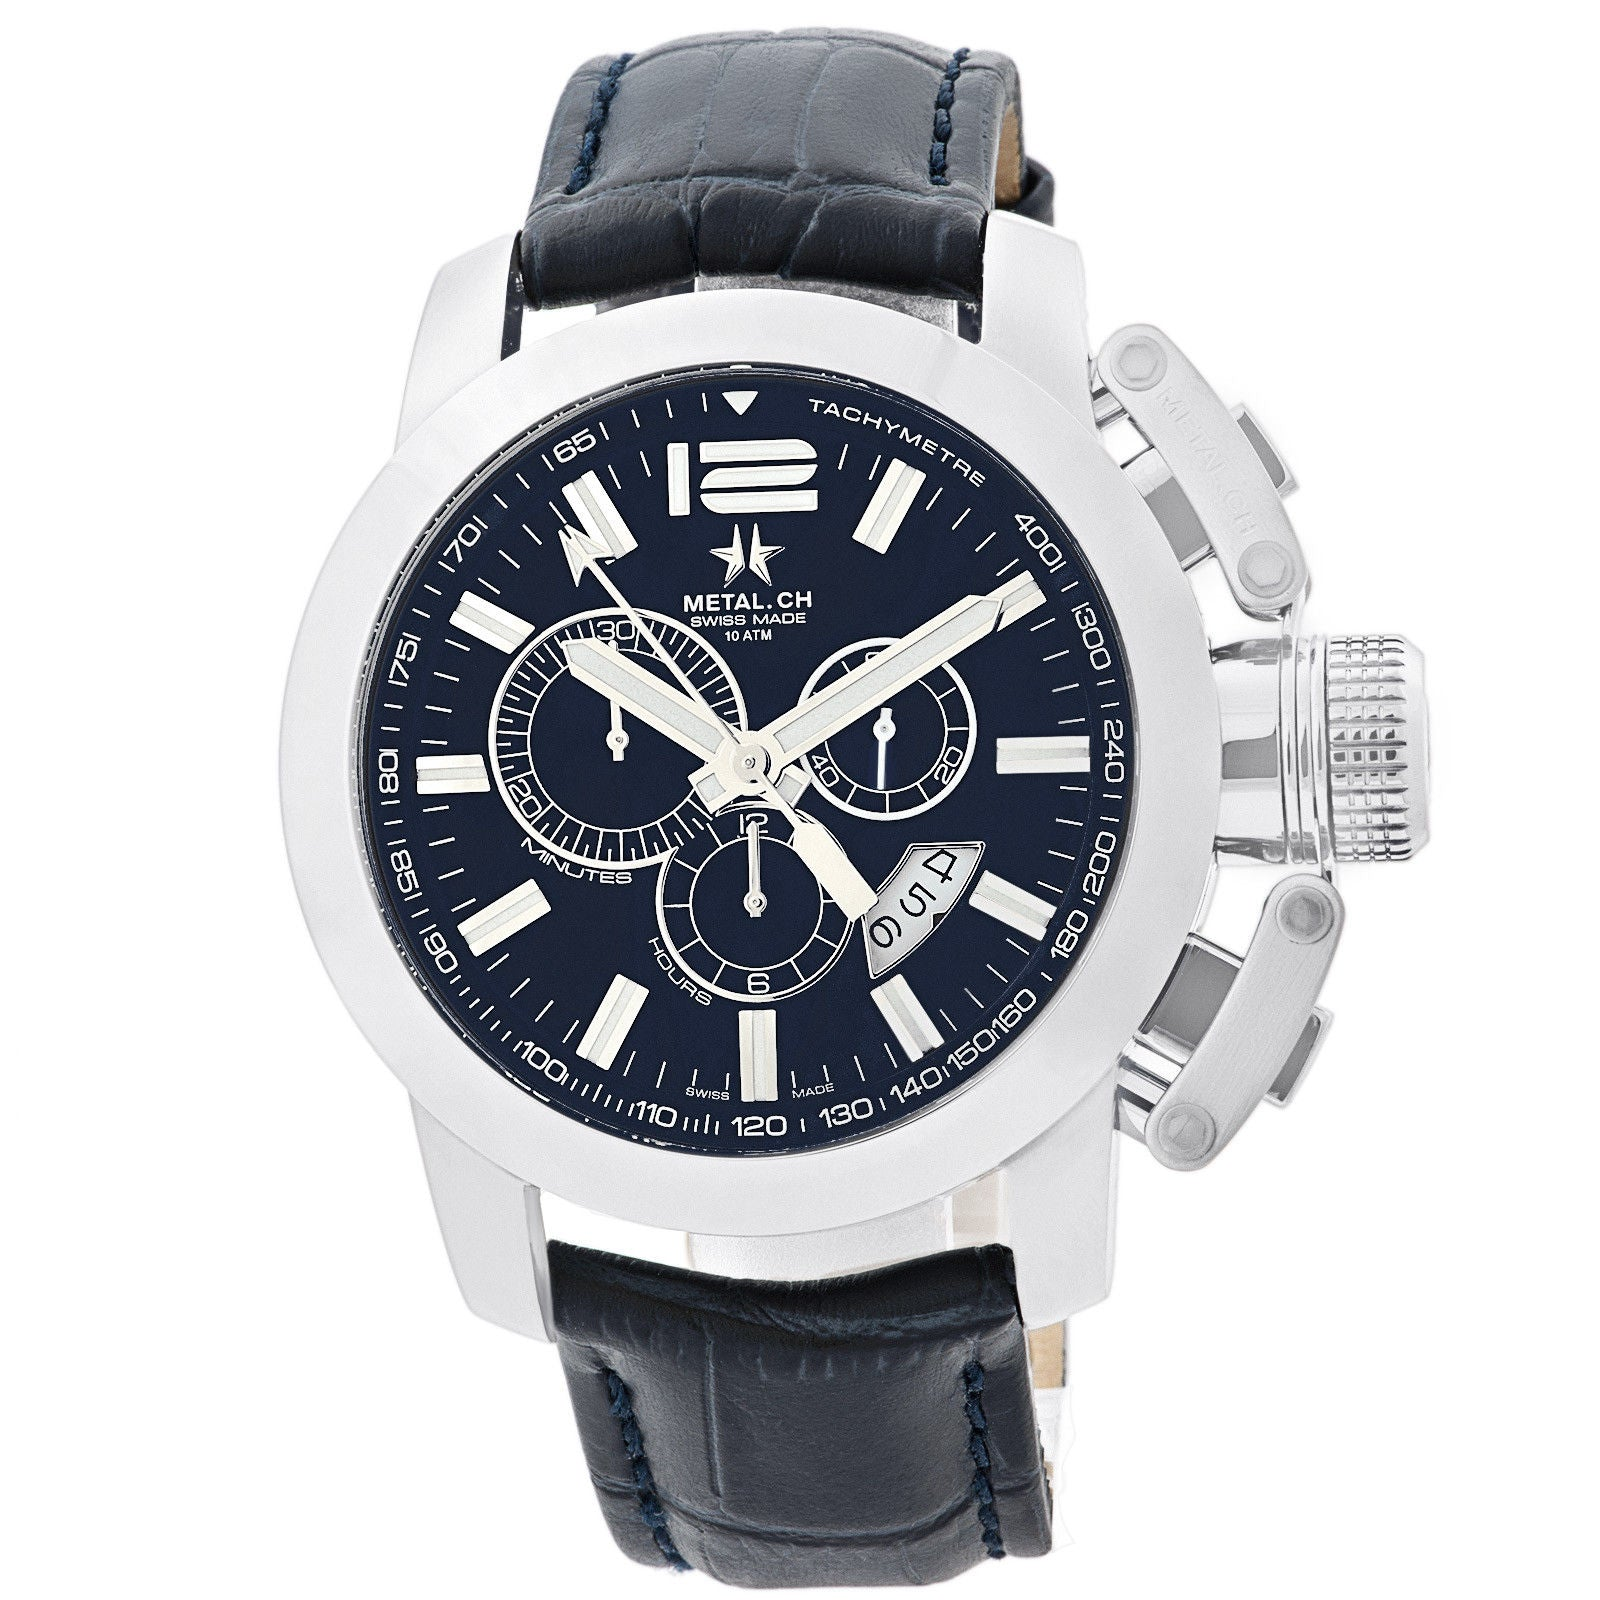 Chrono Series Mens Chronograph Swiss Made Watch 2153.44-Luxury Watches | Mens And Ladies Luxury Watches | Upscale Time